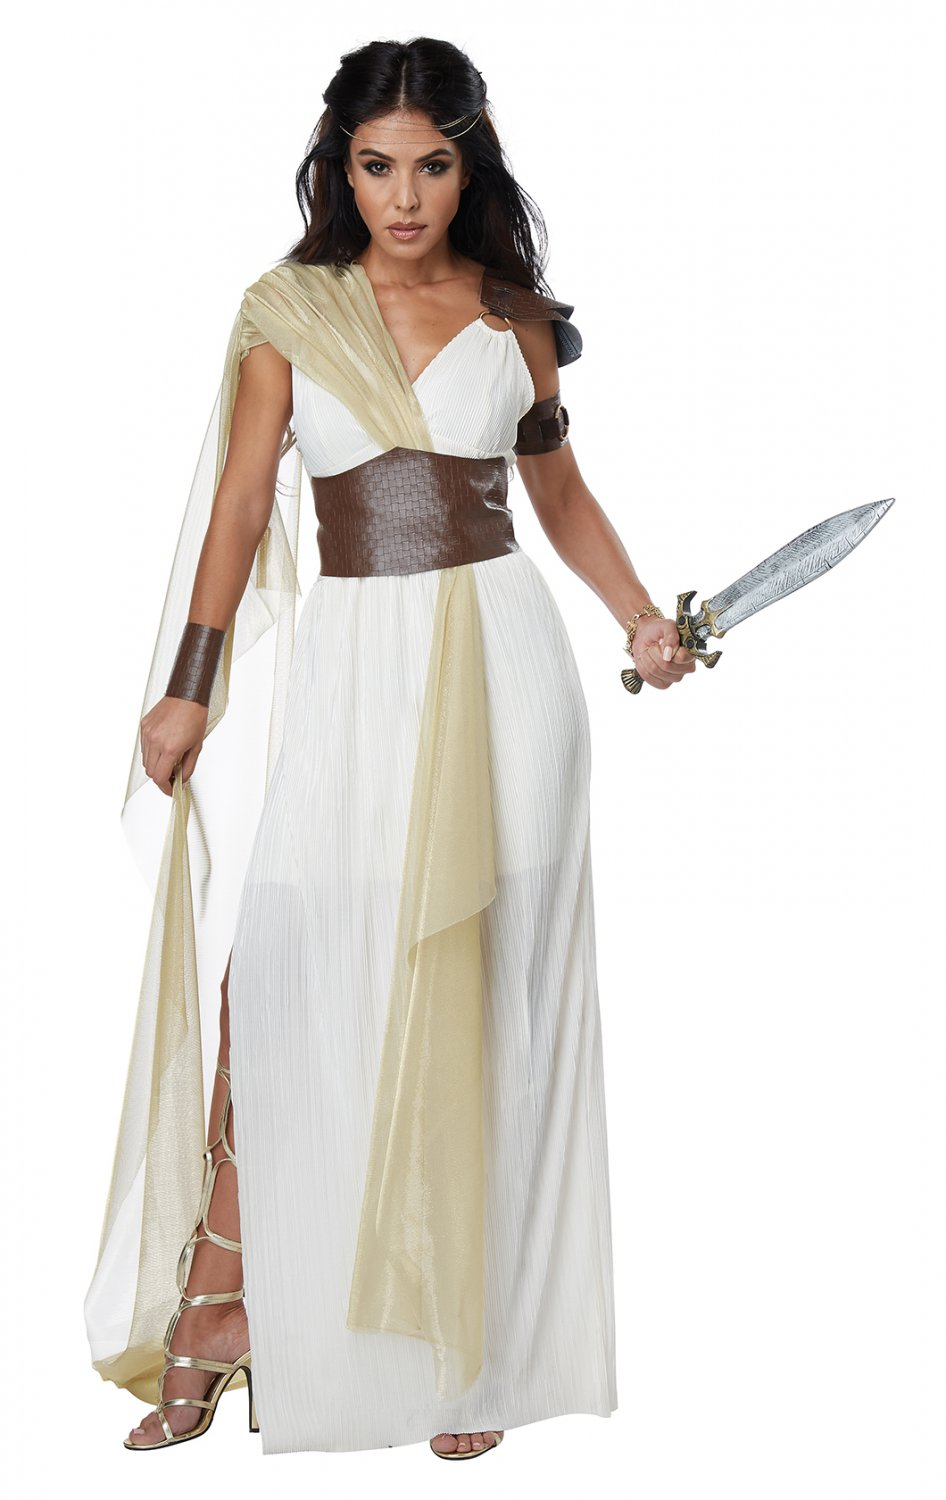 Size: X-Large #01446 Sorority Trojan Spartan Warrior Titan 300 Queen Adult Costume